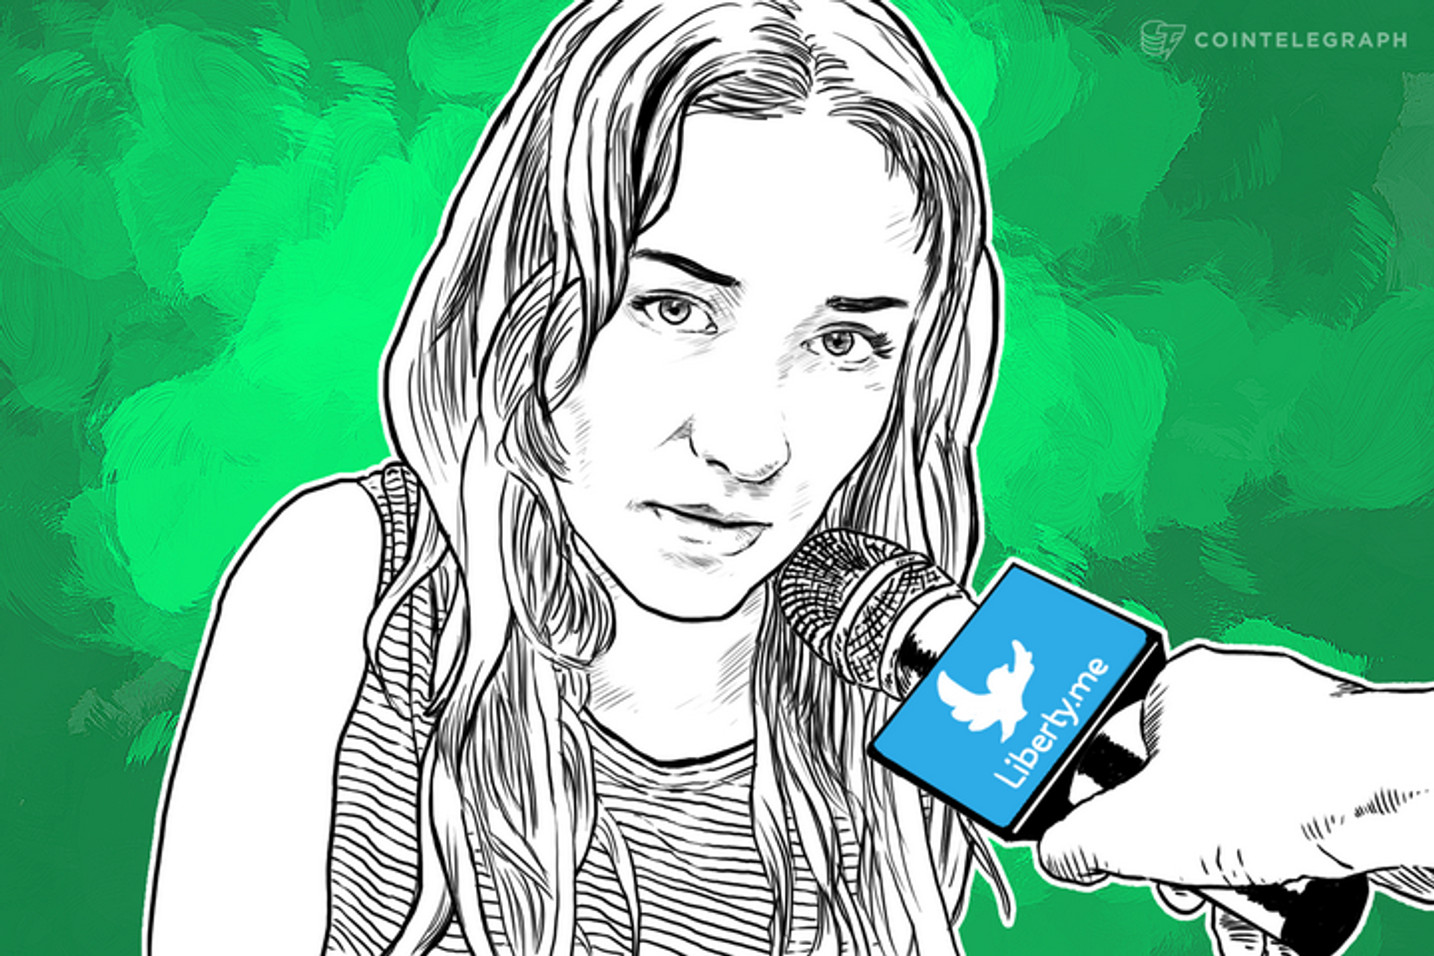 Liberty.me Hosts Third Big-Name Bitcoin Podcast, Announces 3 BTC Competition Winners